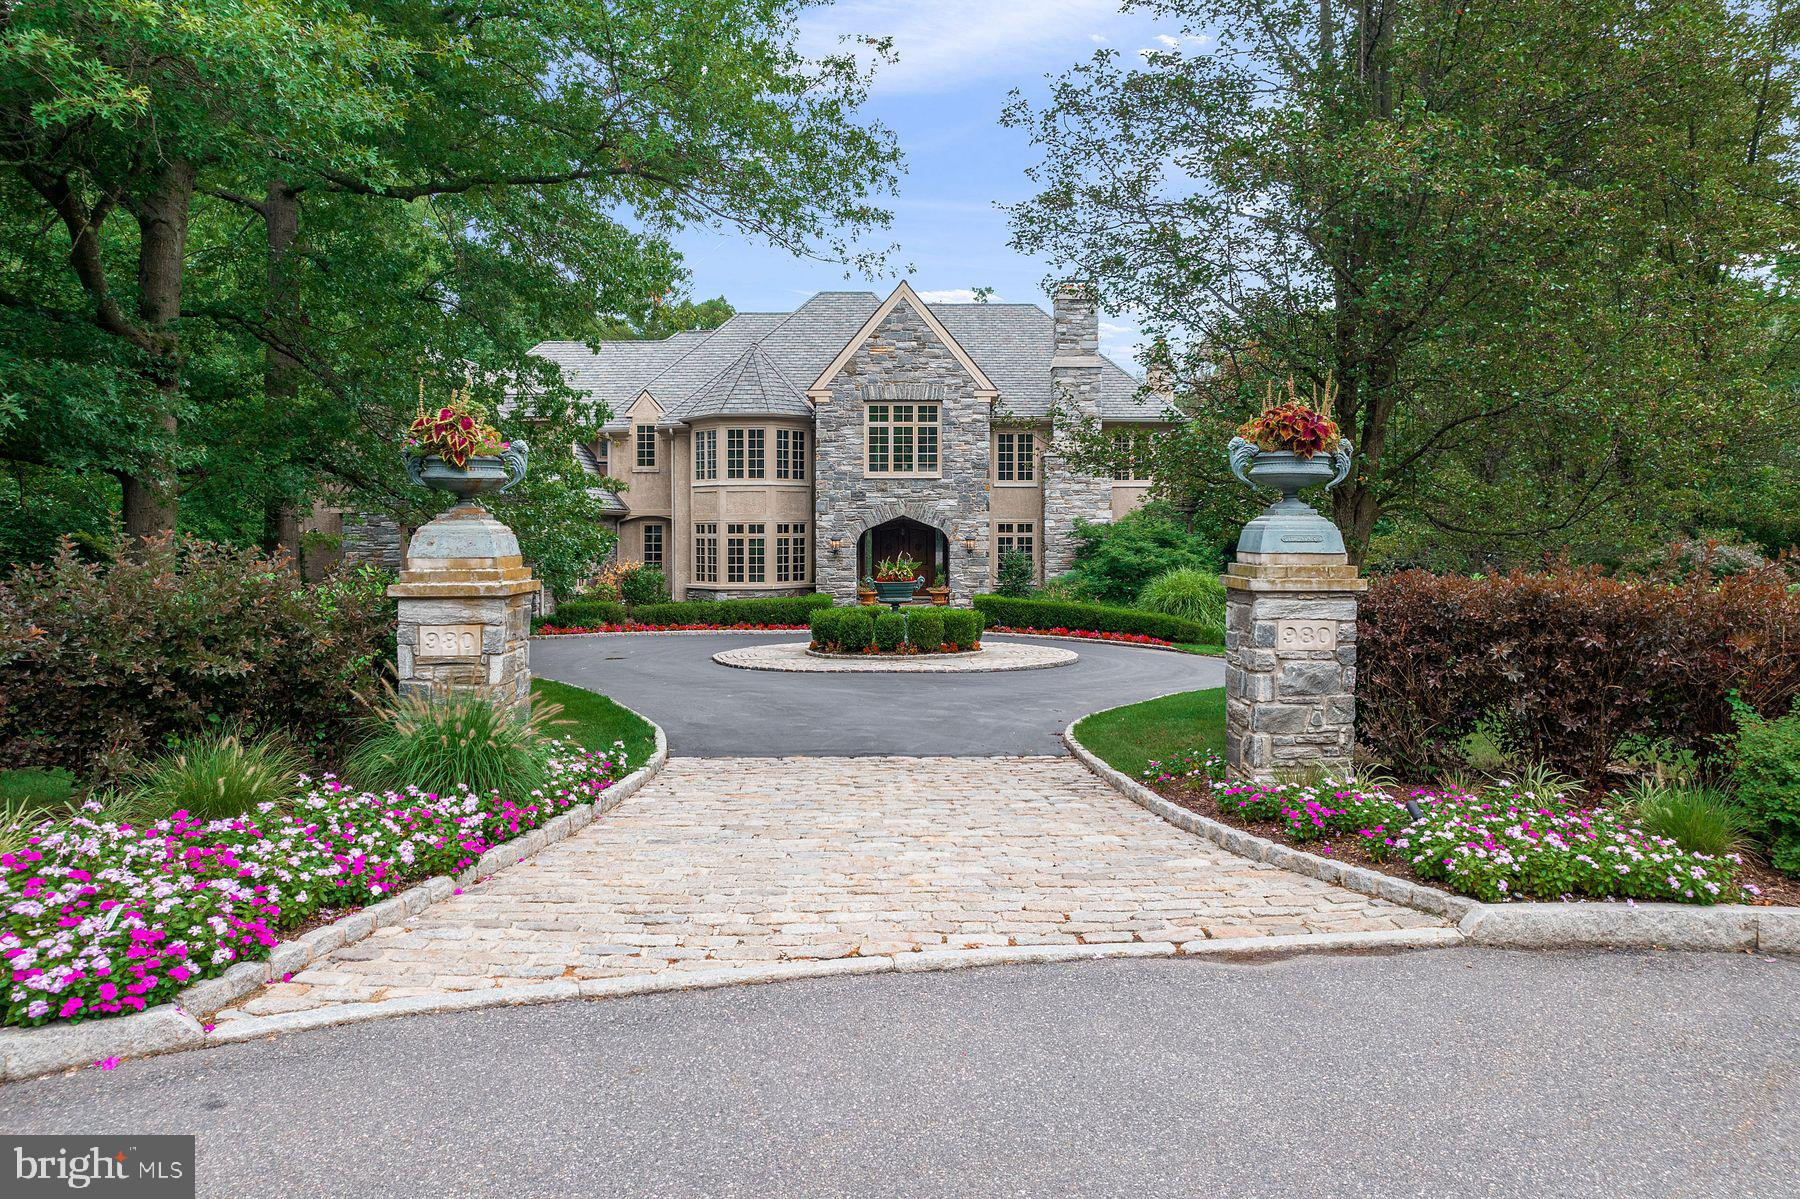 Welcome to one of the most spectacular estates in Gladwyne. This stately property  was  impeccably crafted by renowned builder C.F. Holloway and  is majestically set on a breathtaking 1.6 acre cul-de-sac lot in Gladwyne's premier walkable neighborhood. Look no further and enjoy the graciously designed circular  entrance with stone pillars, Belgian block courtyard detail, stunning landscaping and hardscaping, dramatic entrance foyer with soaring  10' ceiling heights and sweeping curved staircase, bright sun-filled windows with private views, an open floor plan with generously proportioned  rooms catering to comfortable living and effortless entertaining, beautiful cherry floors, hand crafted moldings,  casements and millwork, sophisticated  architectural details, designs, superior finishes and  materials throughout. Move right in and enjoy the inviting living room with gas fireplace and  dining room with bay window flowing off of the impressive foyer, fabulous gourmet kitchen with adjacent breakfast room, family room and screened in porch, beautifully appointed library with fireplace, second home office off of kitchen/ mudroom/ back entrance, expansive master suite with 3 walk in closets, perfectly sized bedroom  with trayed ceiling, gas fireplace and luxurious marble bathroom with gas fireplace, exquisite custom vanities, soaking tub and frameless glass shower. The second level is completed with 3 additional large bedrooms, all with en-suite custom baths, outfitted walk in closets and one with an en-suite playroom/ office. The third floor is easily accessed with an open staircase and offers two generously sized rooms, a fully roughed-in bathroom, walk-in closet and cedar closet. The lower level offers additional, expandable living space including a walk-out and day- lit full media room with full wet bar and conditioned wine room, full bathroom, second laundry hook up and easy access to the serene backyard. This jewel has it all  and is located within walking distanc